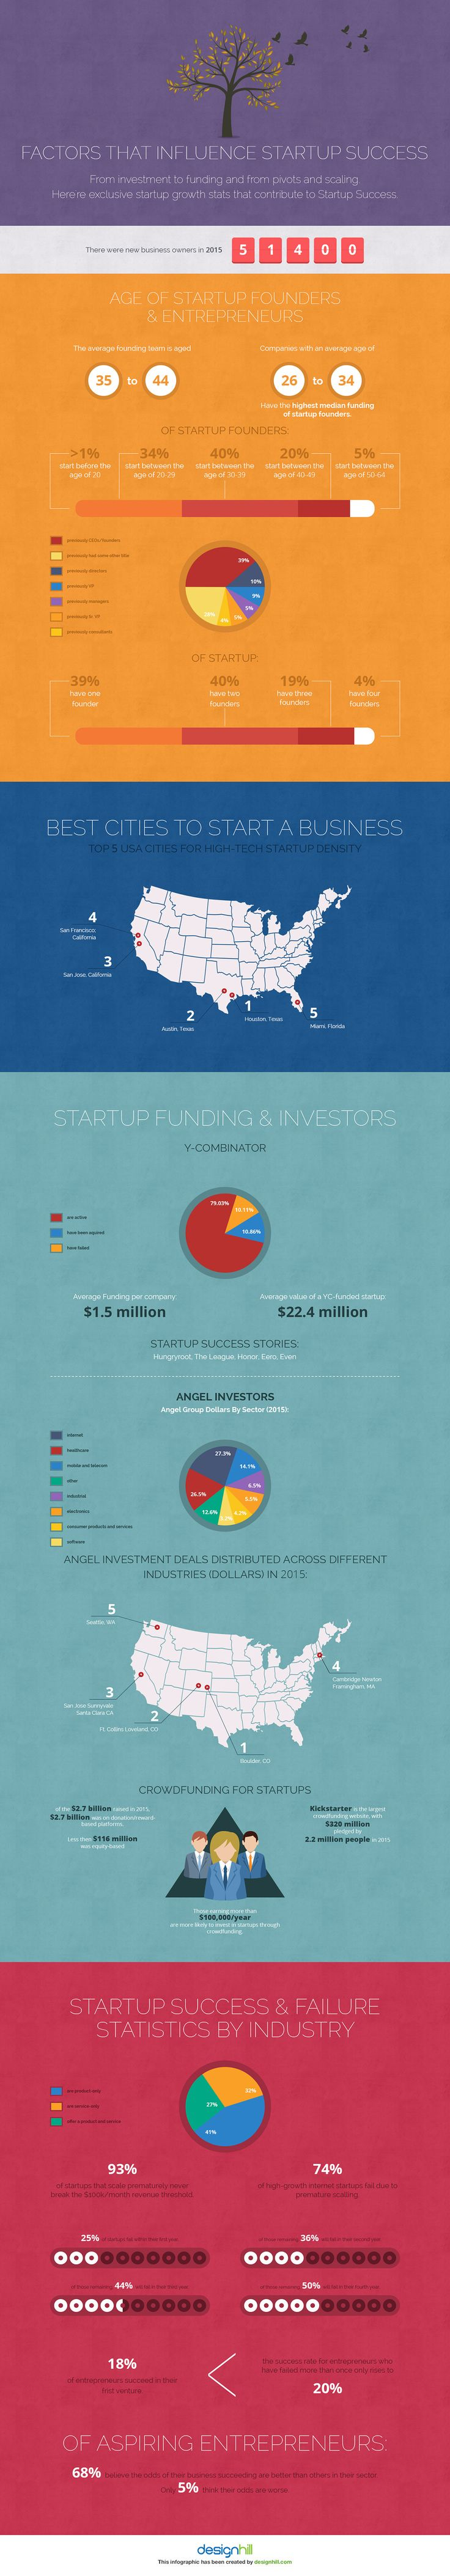 Infographic on Factors that Influence Success for Startups